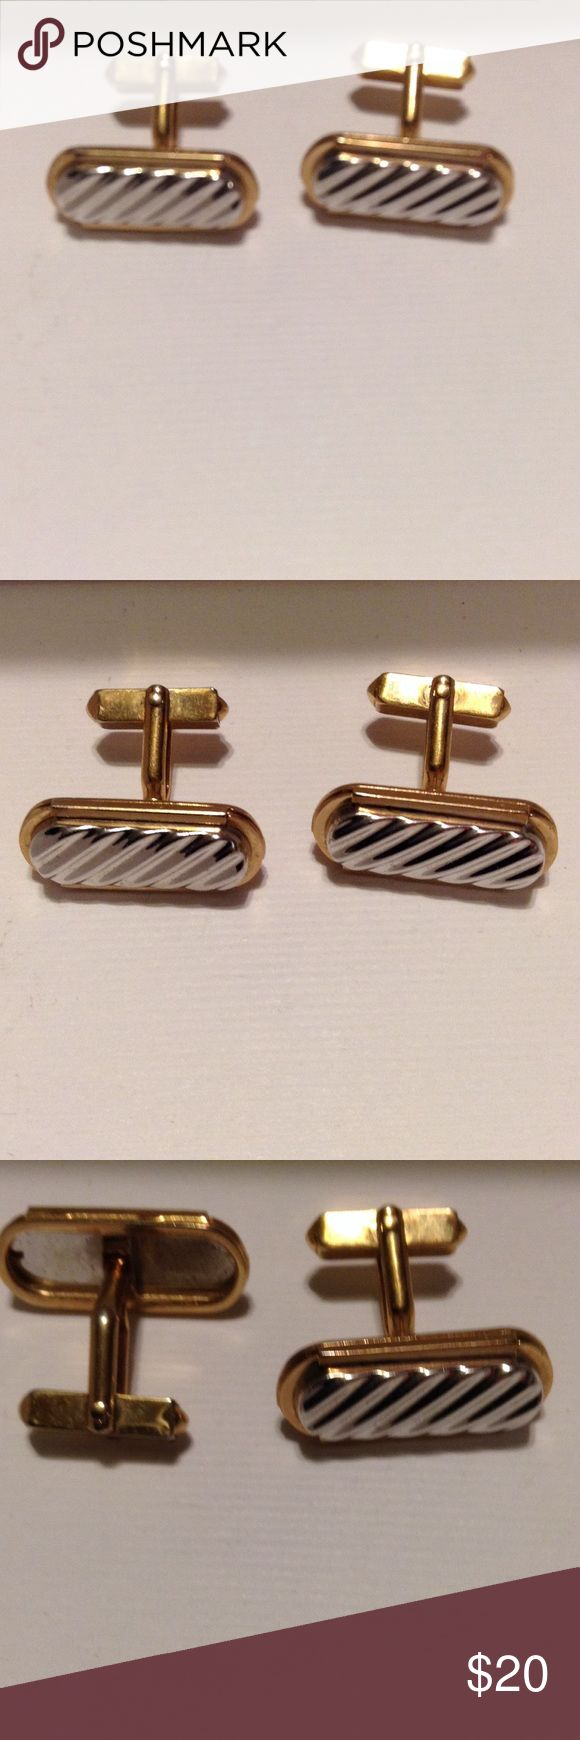 Two tone cufflinks unsigned Vintage cufflinks silver and gold tone bar with stylish ridge design. Has vintage wear. Accessories Cuff Links